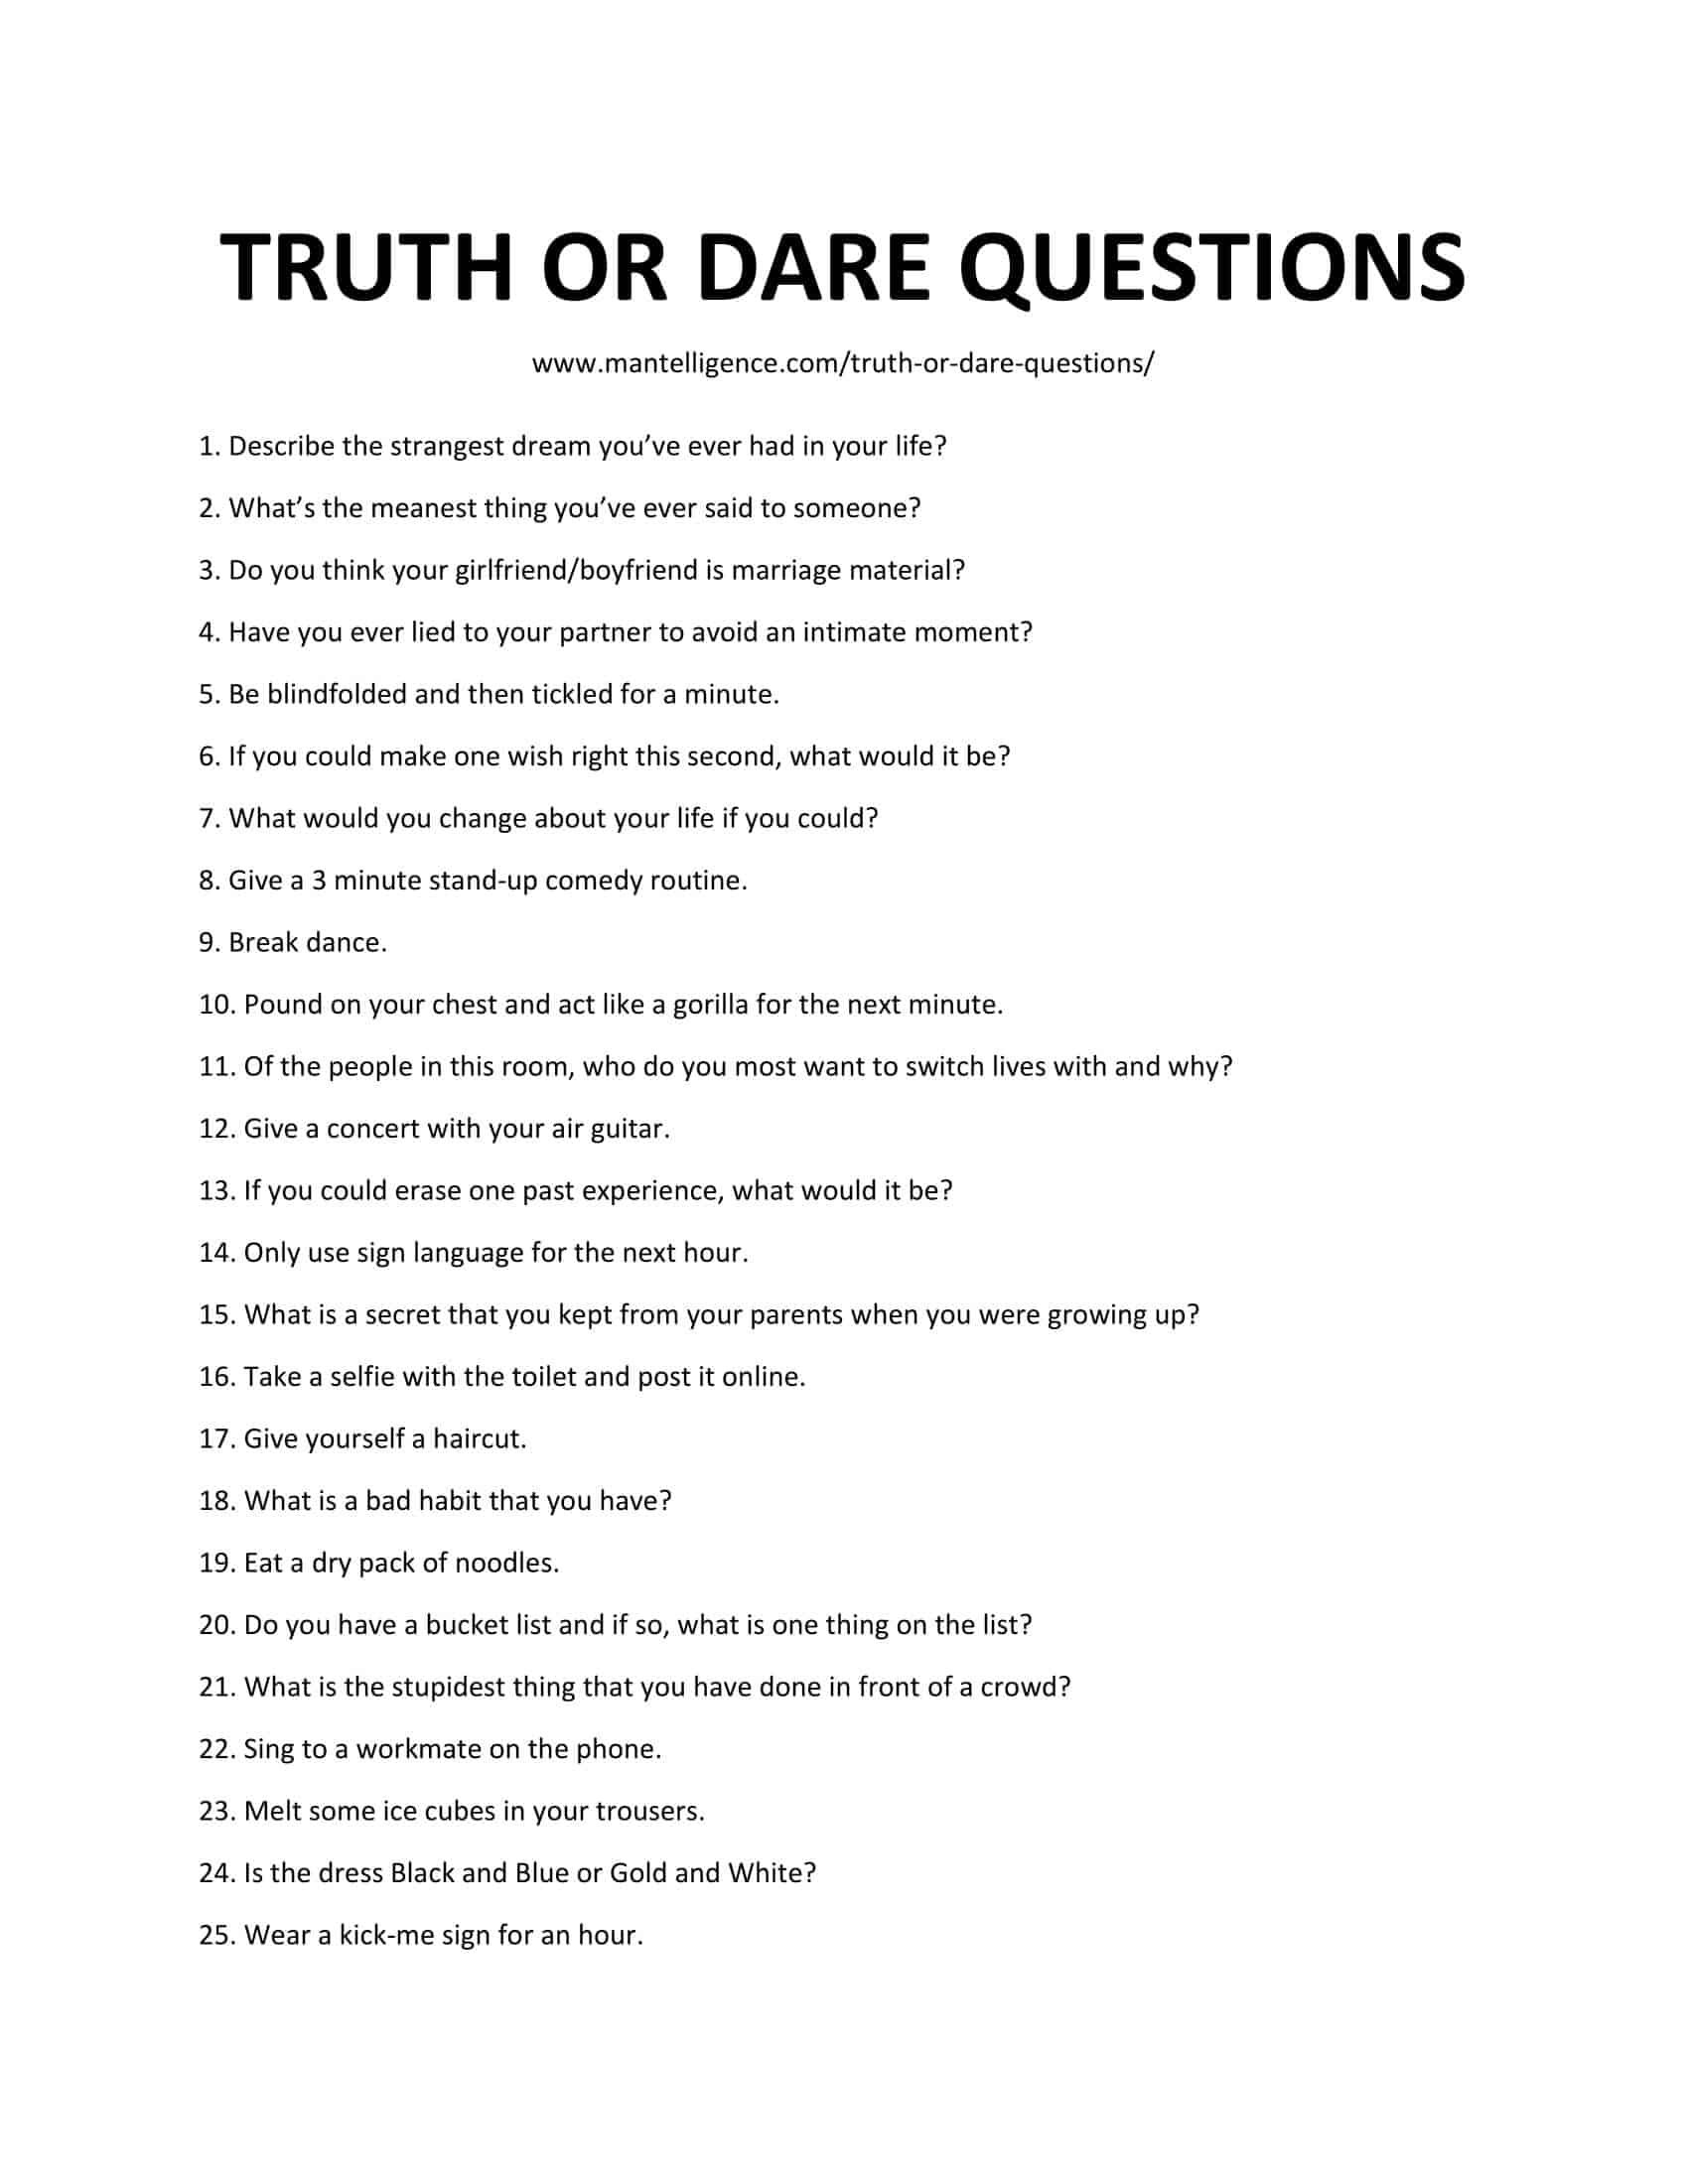 10 Best Good Truth Or Dare Ideas 124 really good truth or dare questions the only list youll need 1 2020